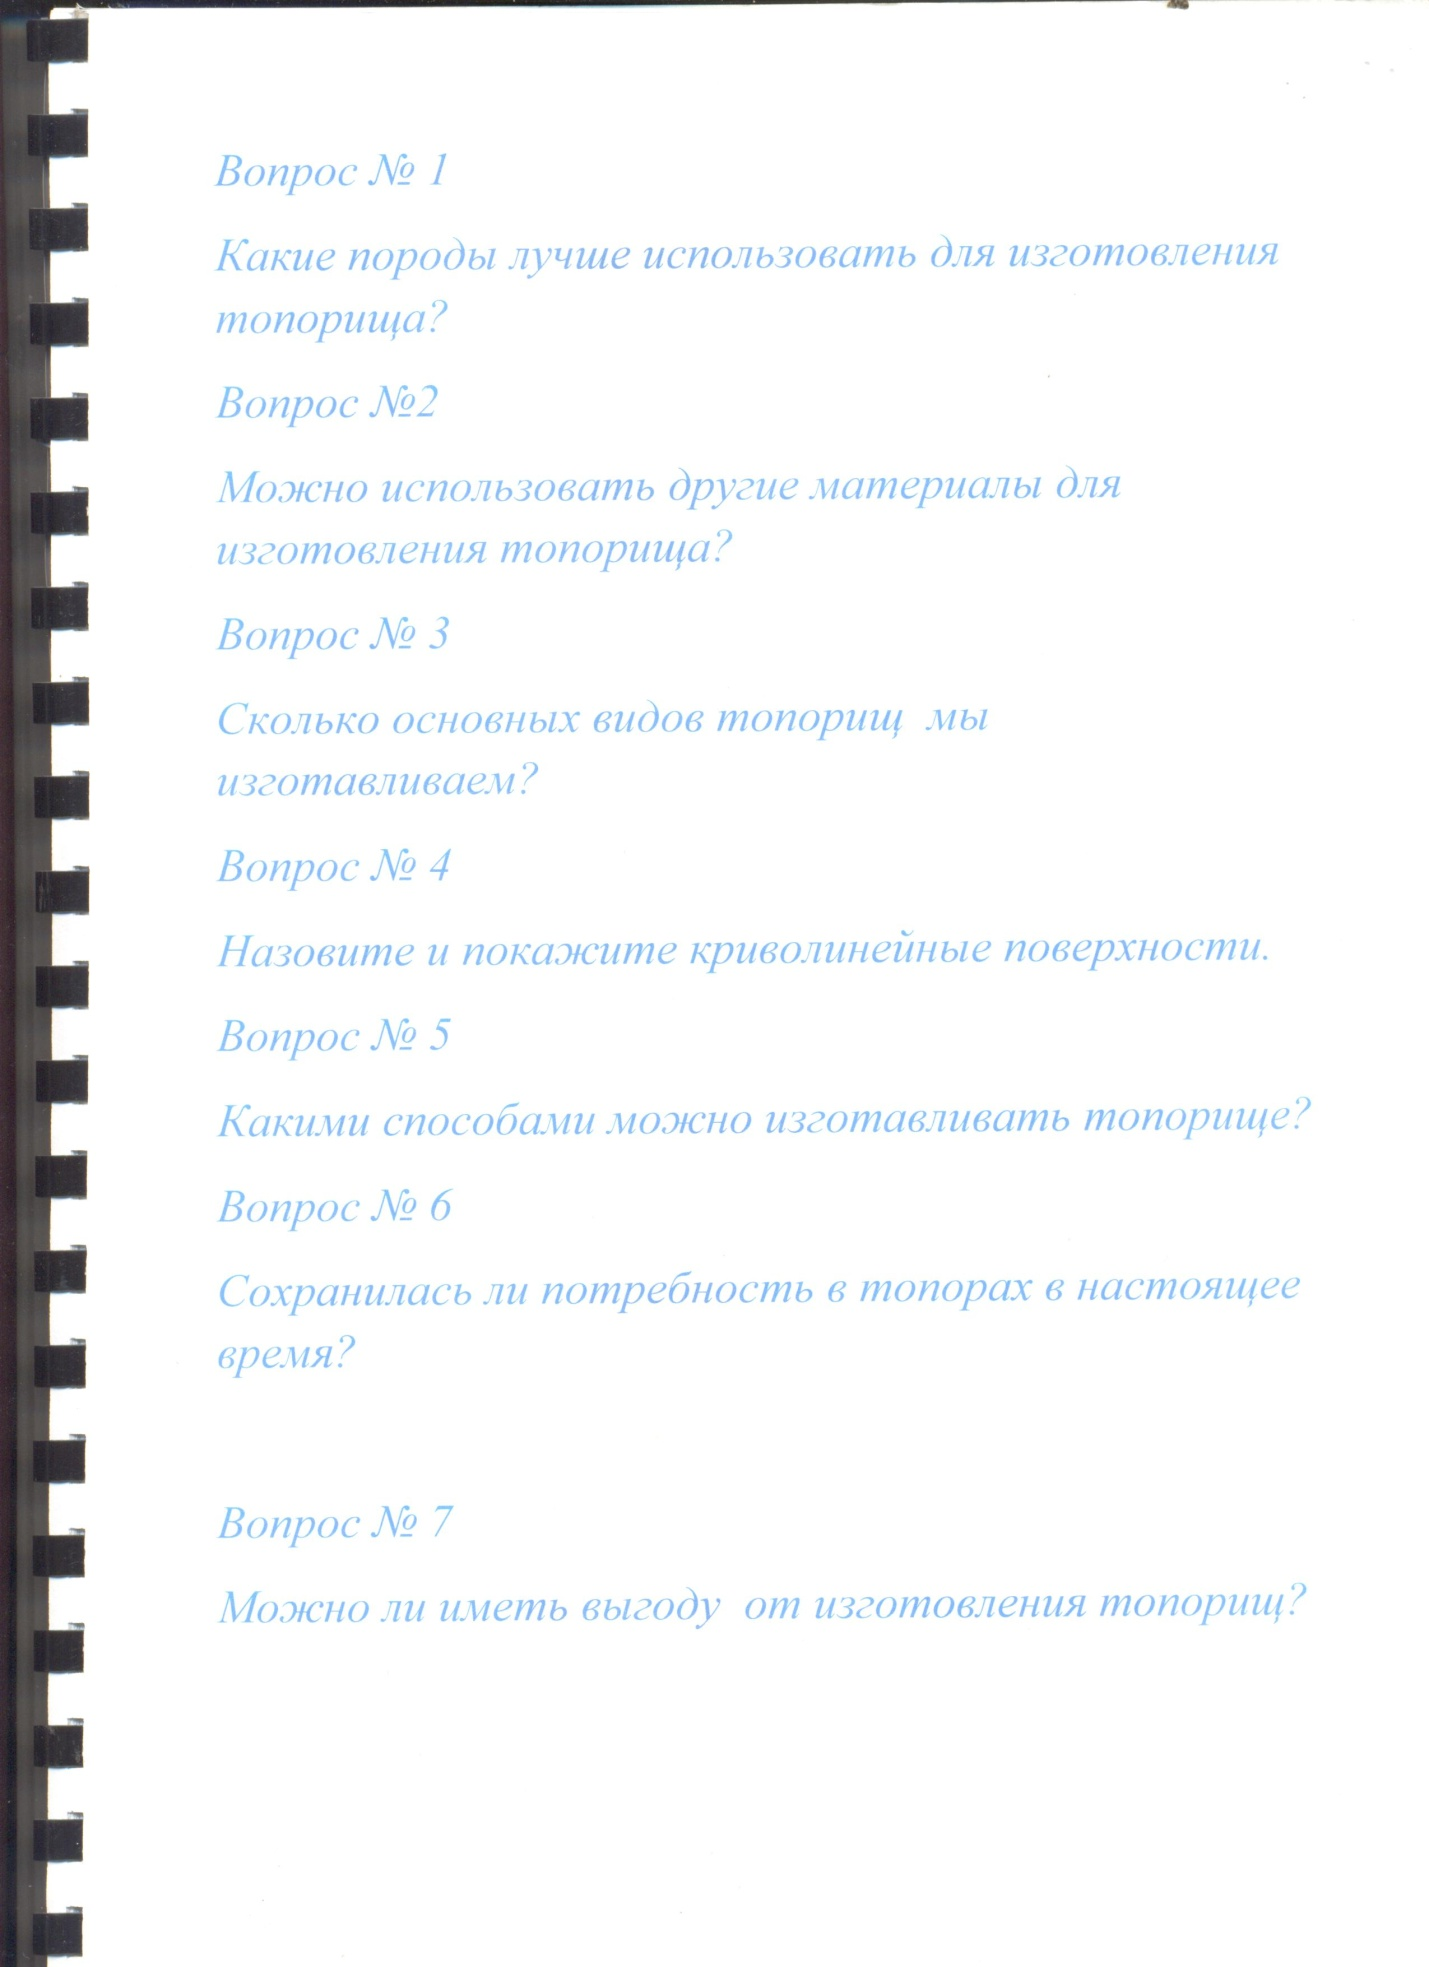 C:\Users\User\Pictures\2015-11-16 топор\топор 004.jpg